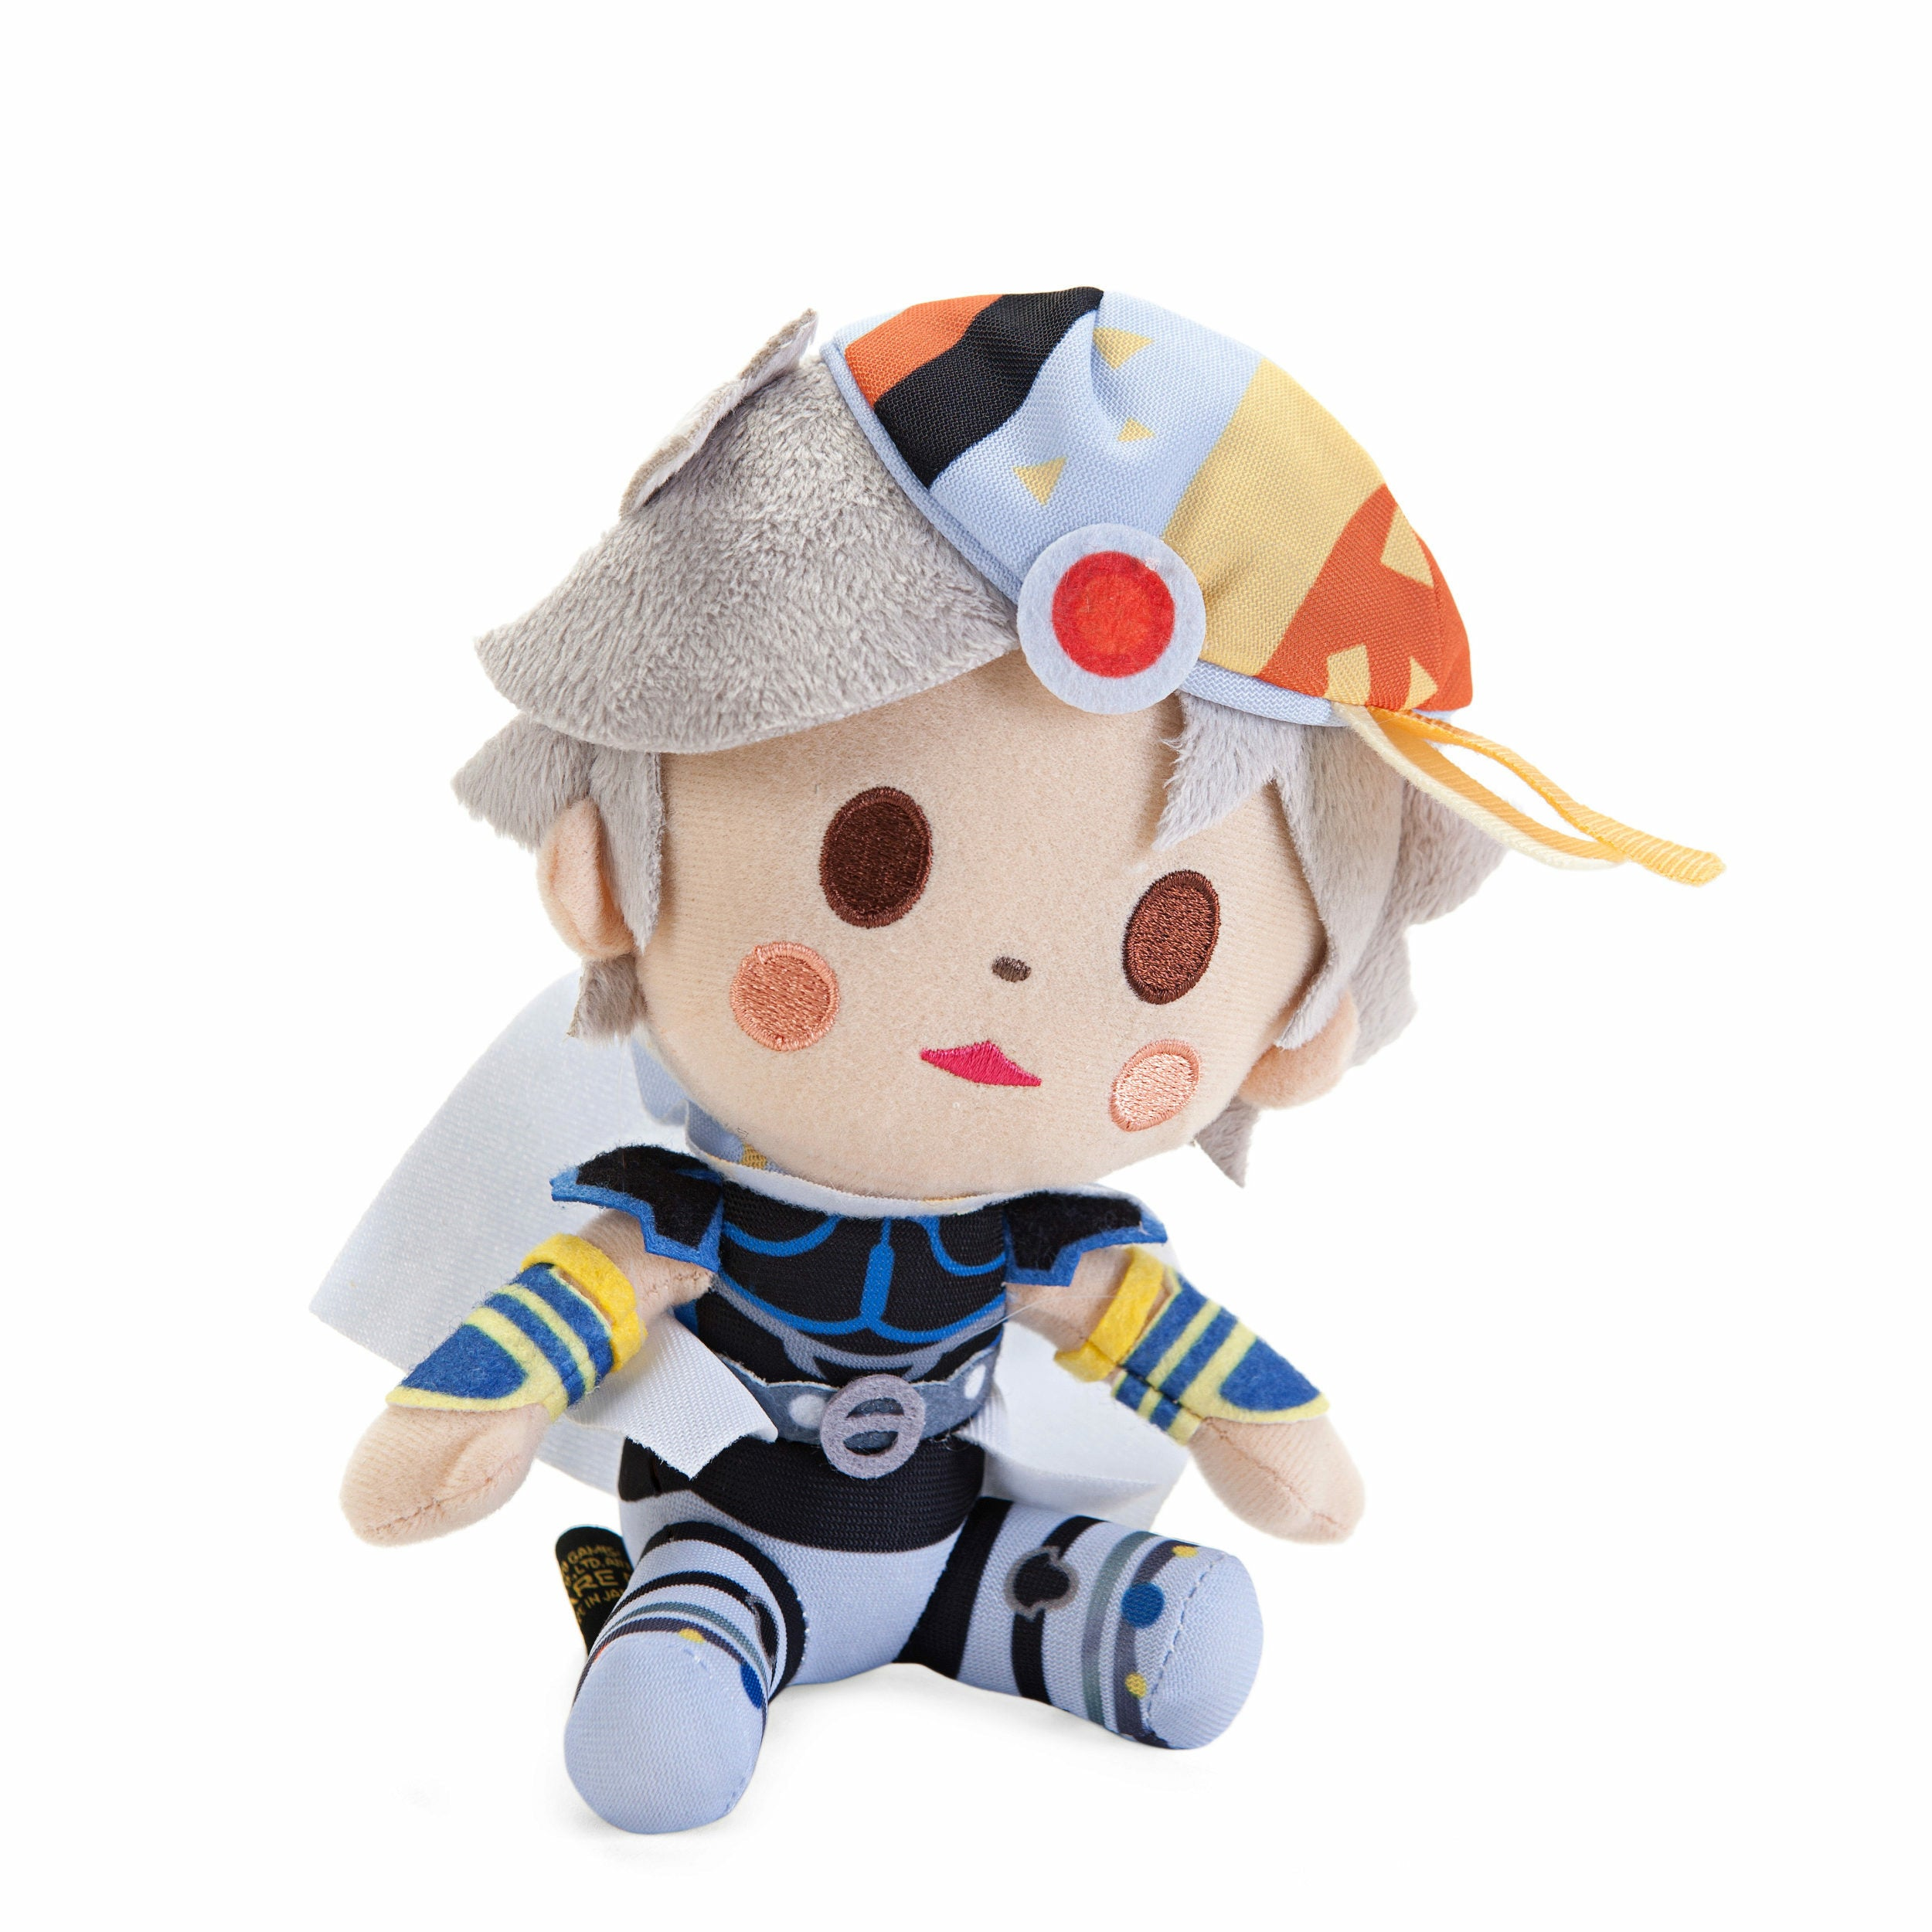 Final Fantasy All Stars Deformed Plush Vol. 3 Firion Plush Toy